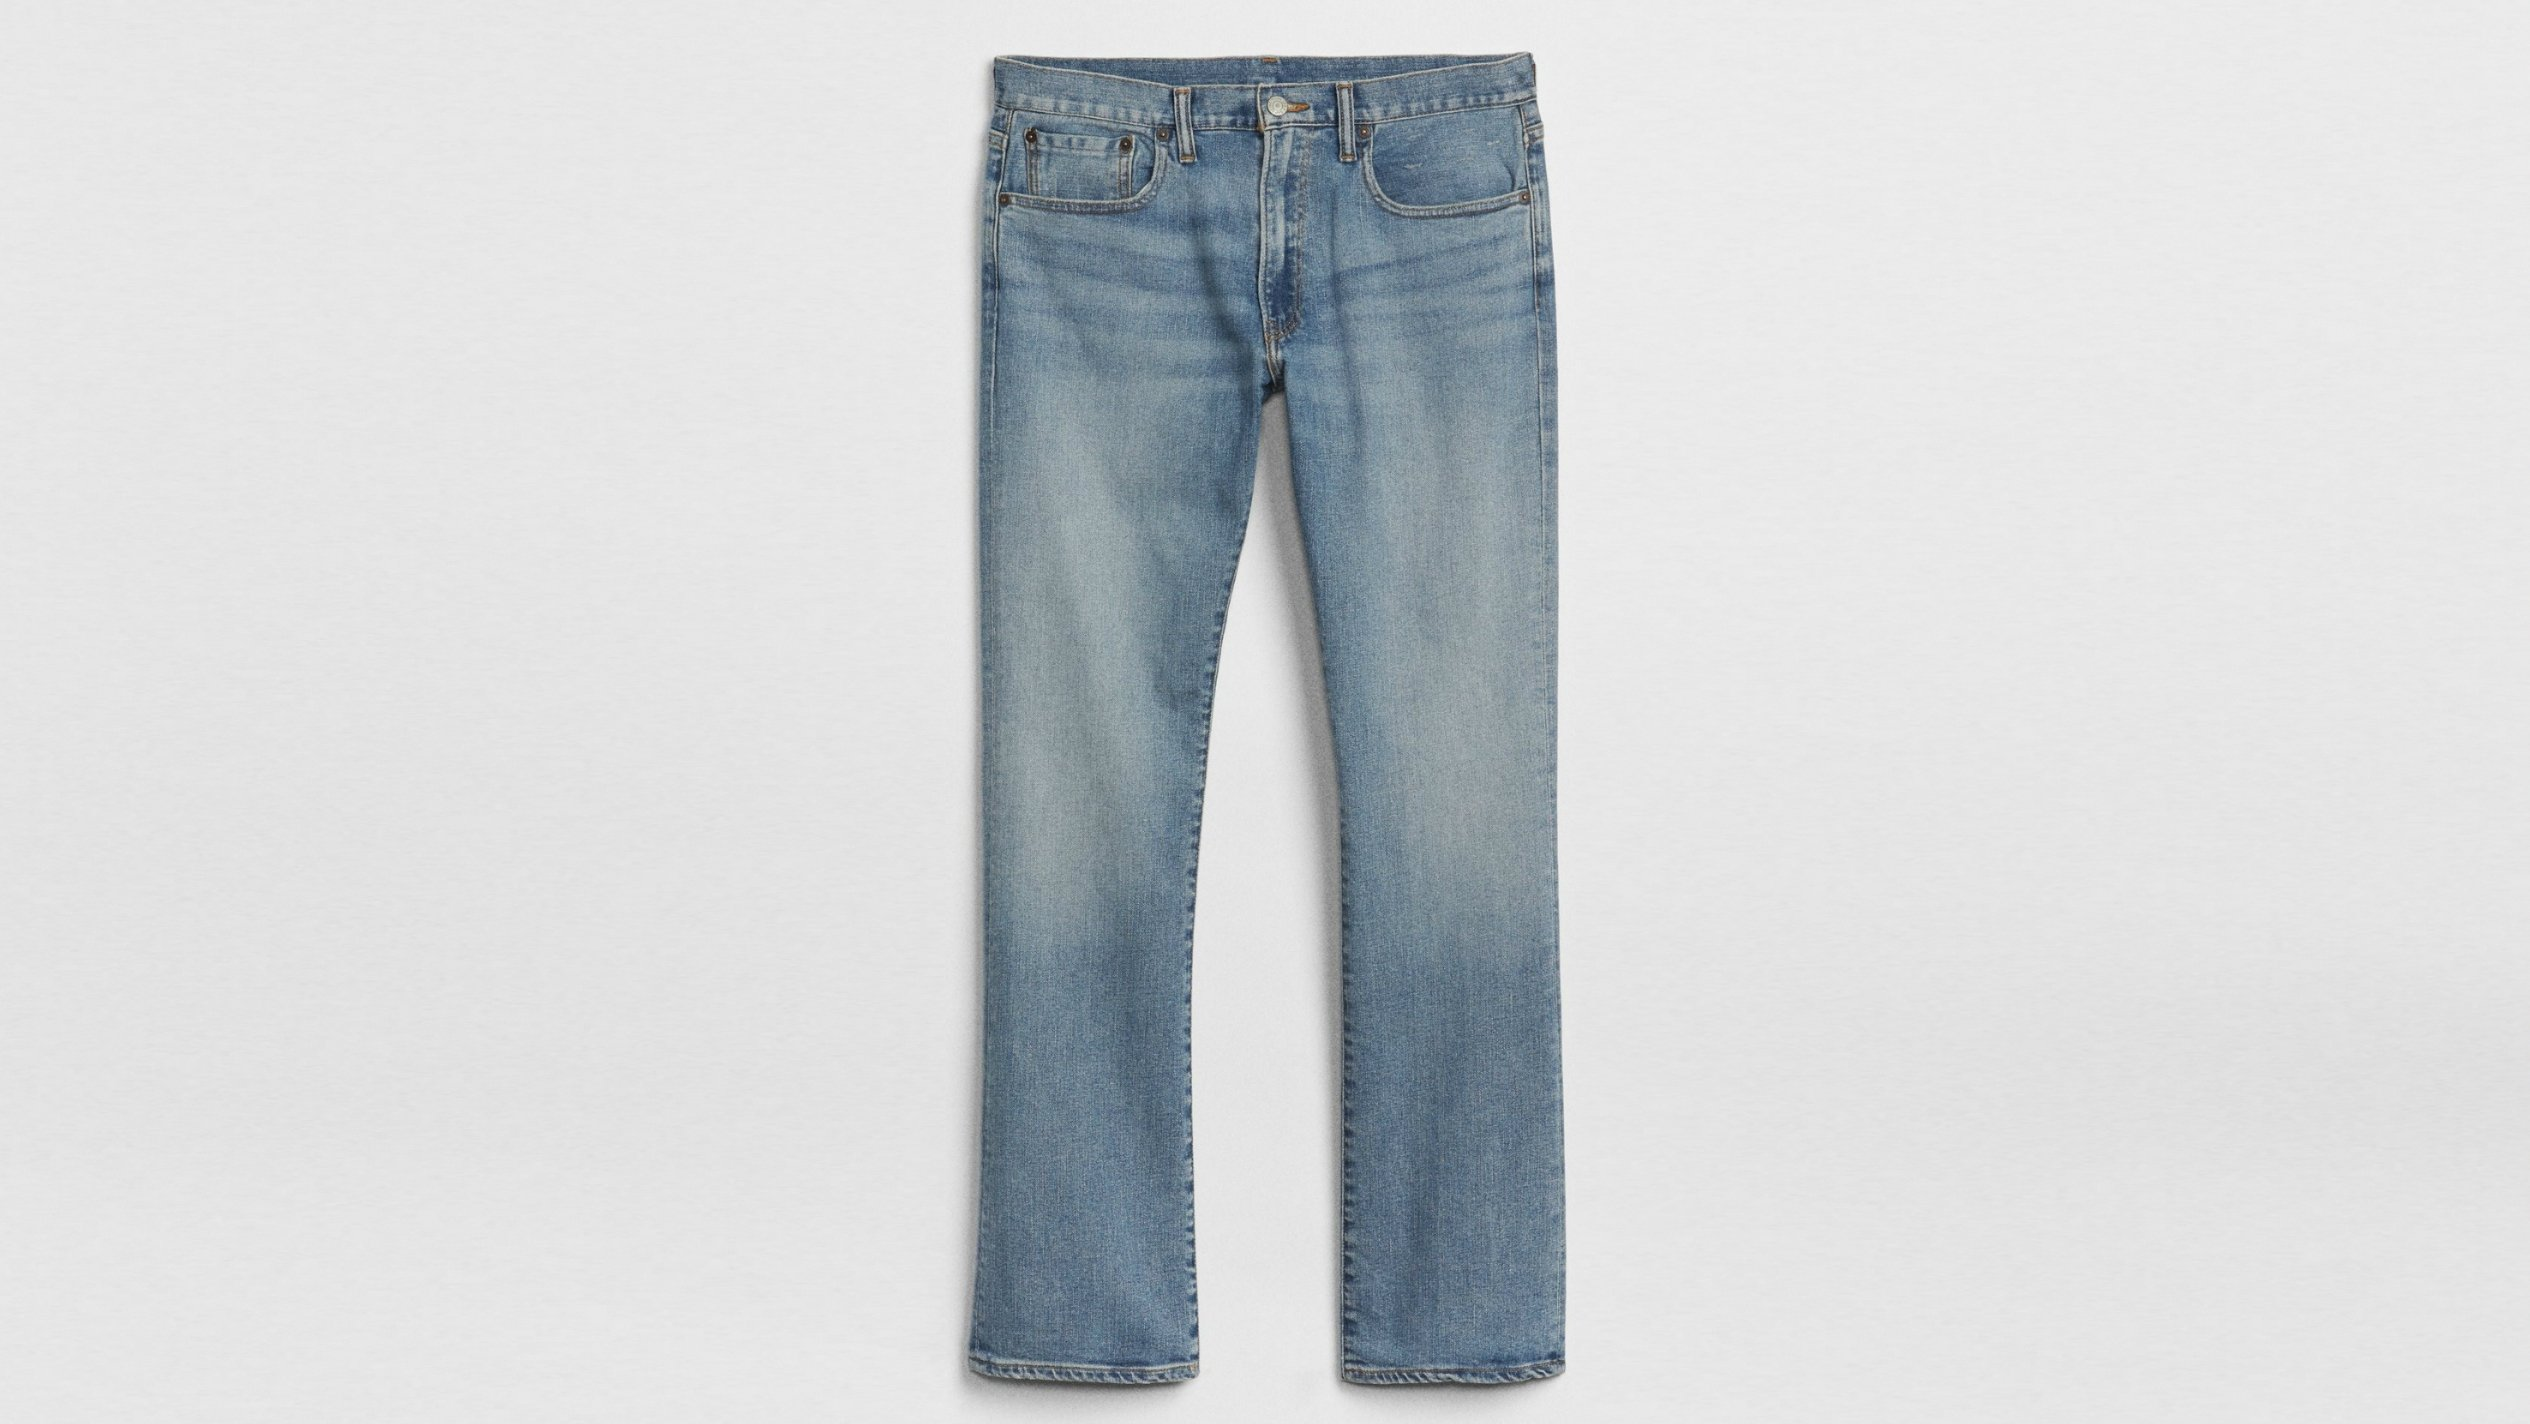 Best Jeans For Men And Women 2019 The Latest Jeans From Levi